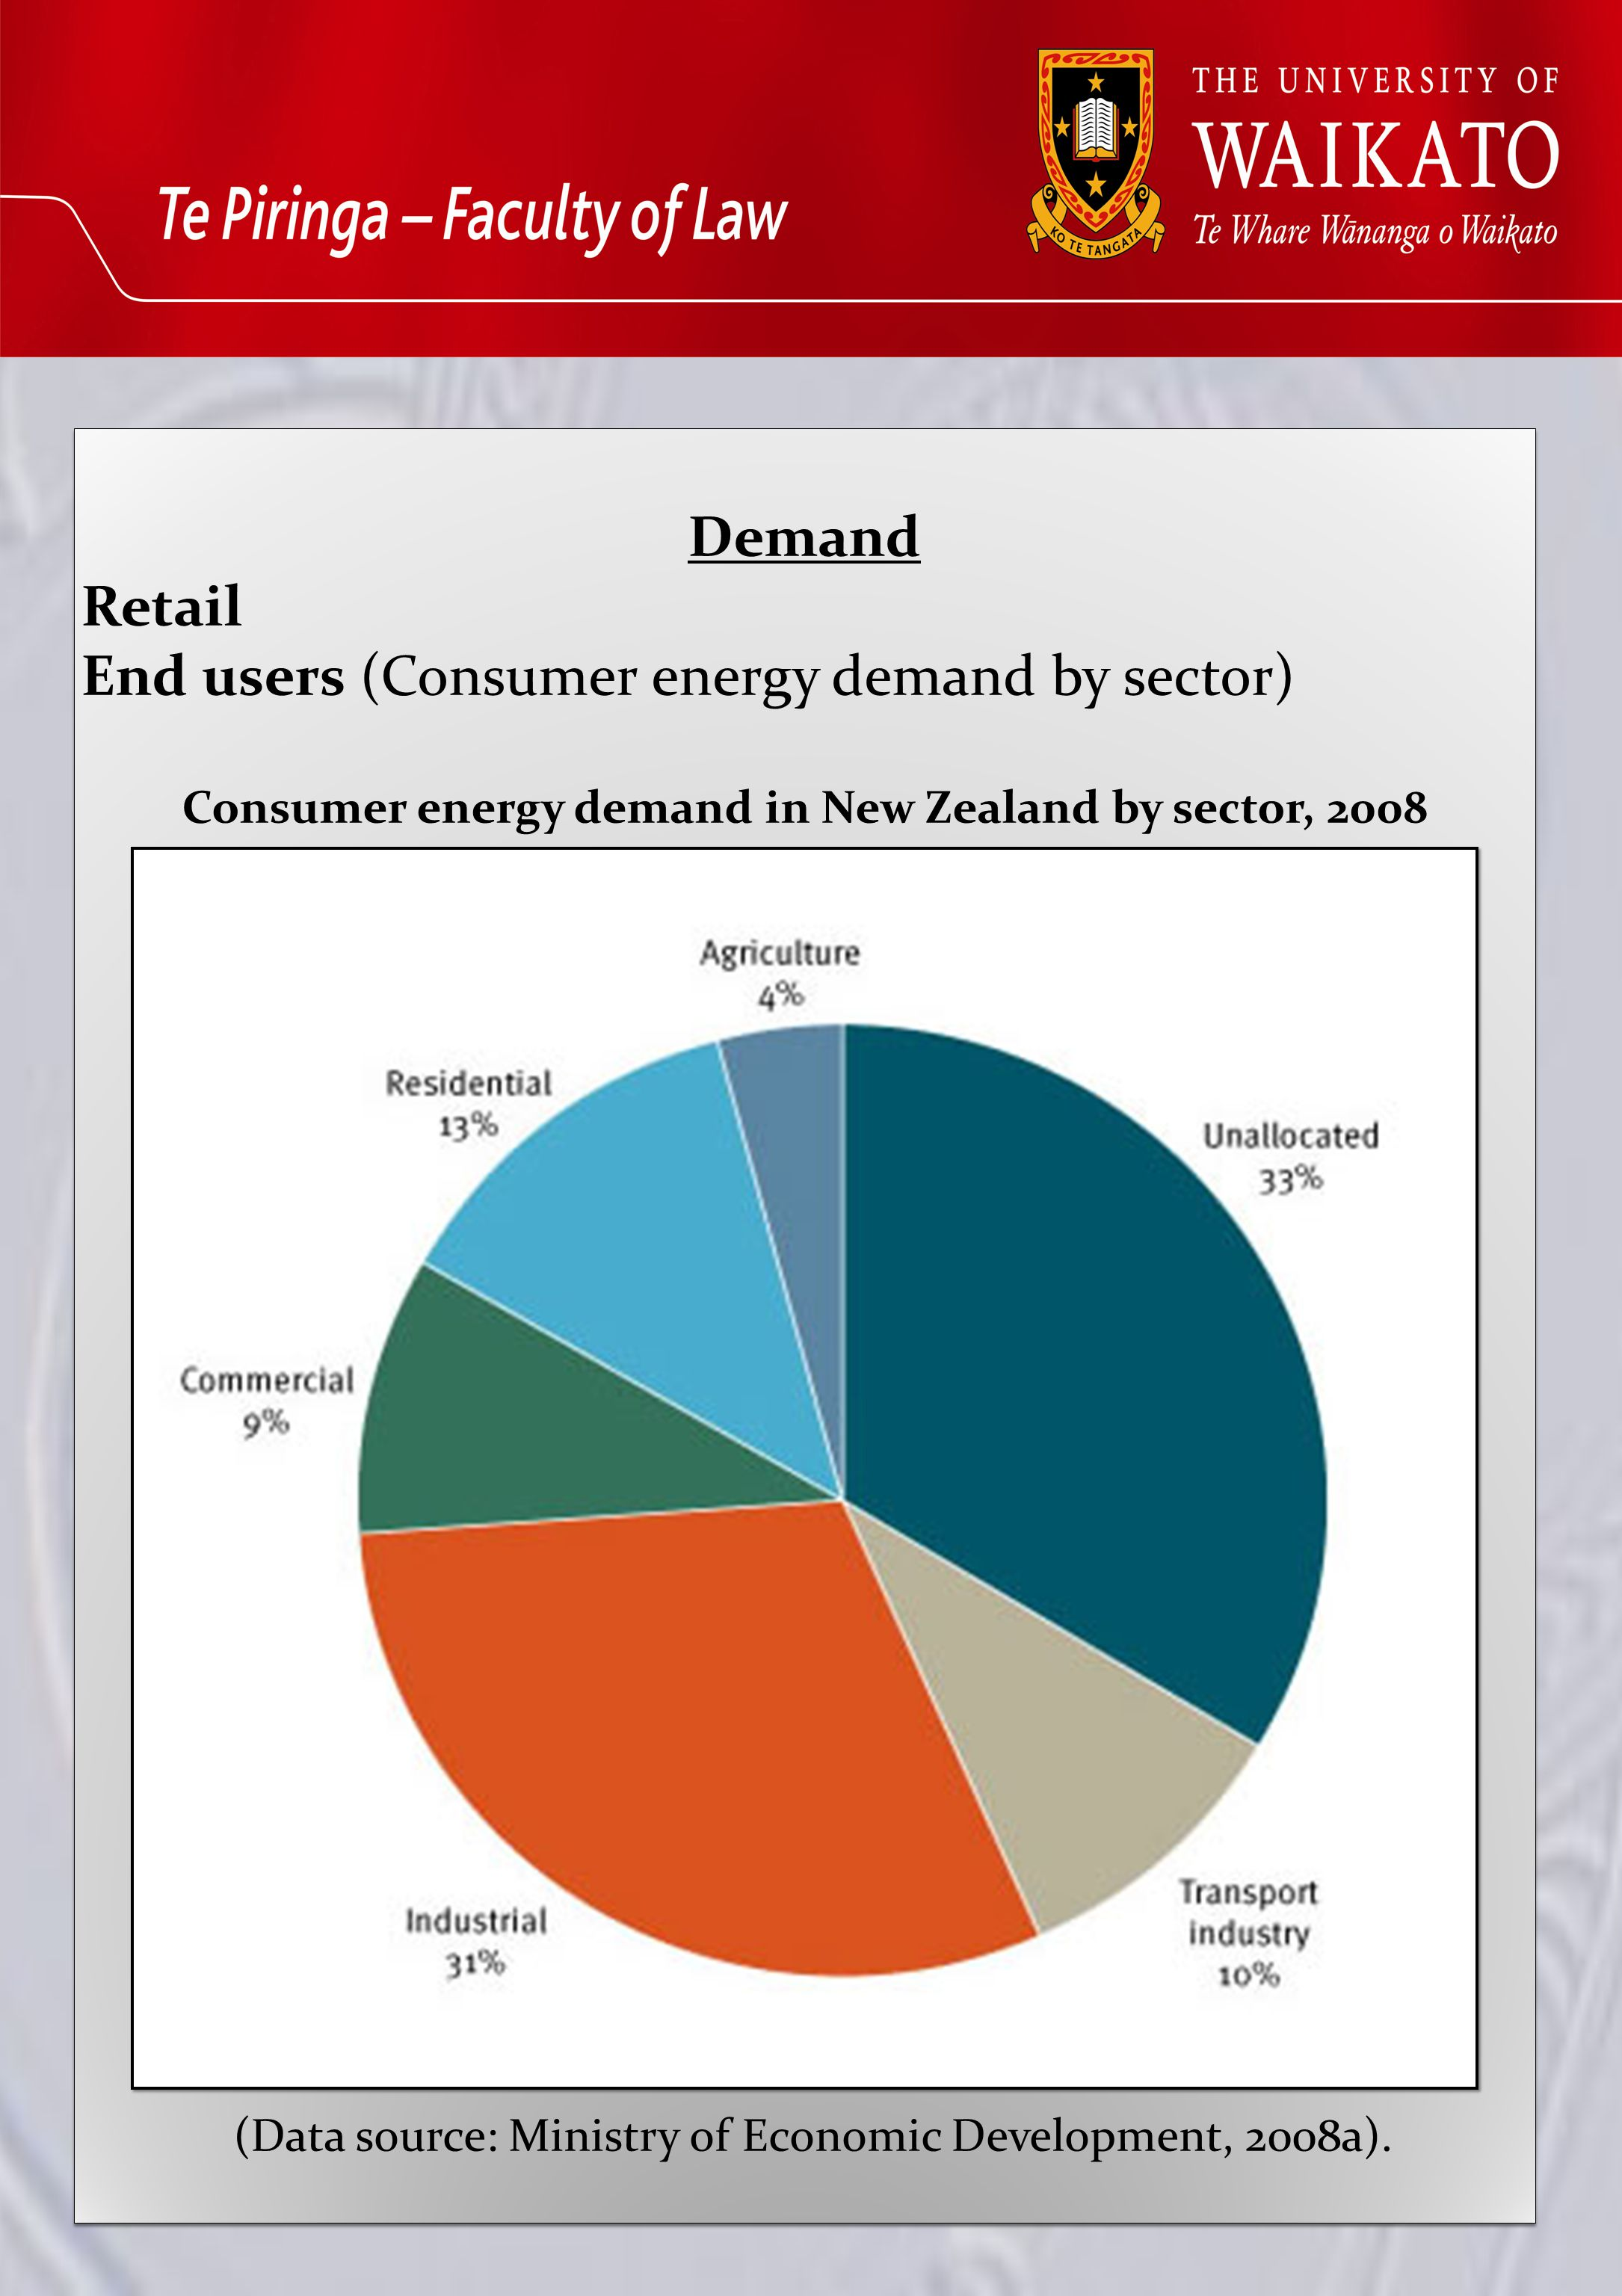 Demand Retail End users (Consumer energy demand by sector) Consumer energy demand in New Zealand by sector, 2008 (Data source: Ministry of Economic Development, 2008a).